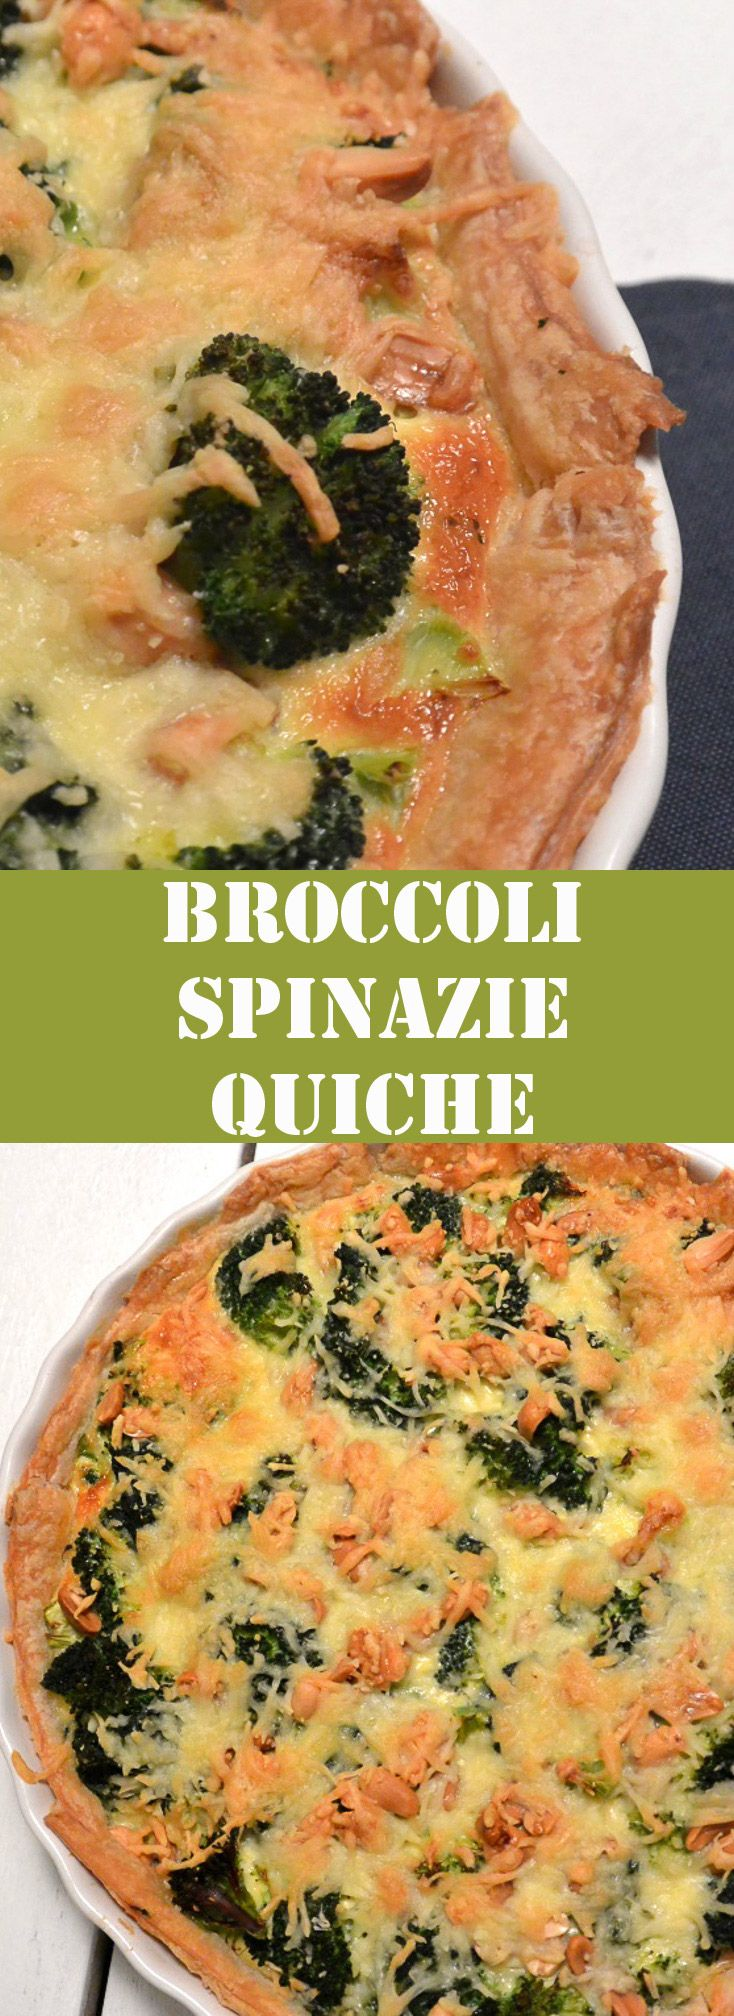 broccoli spinazie quiche